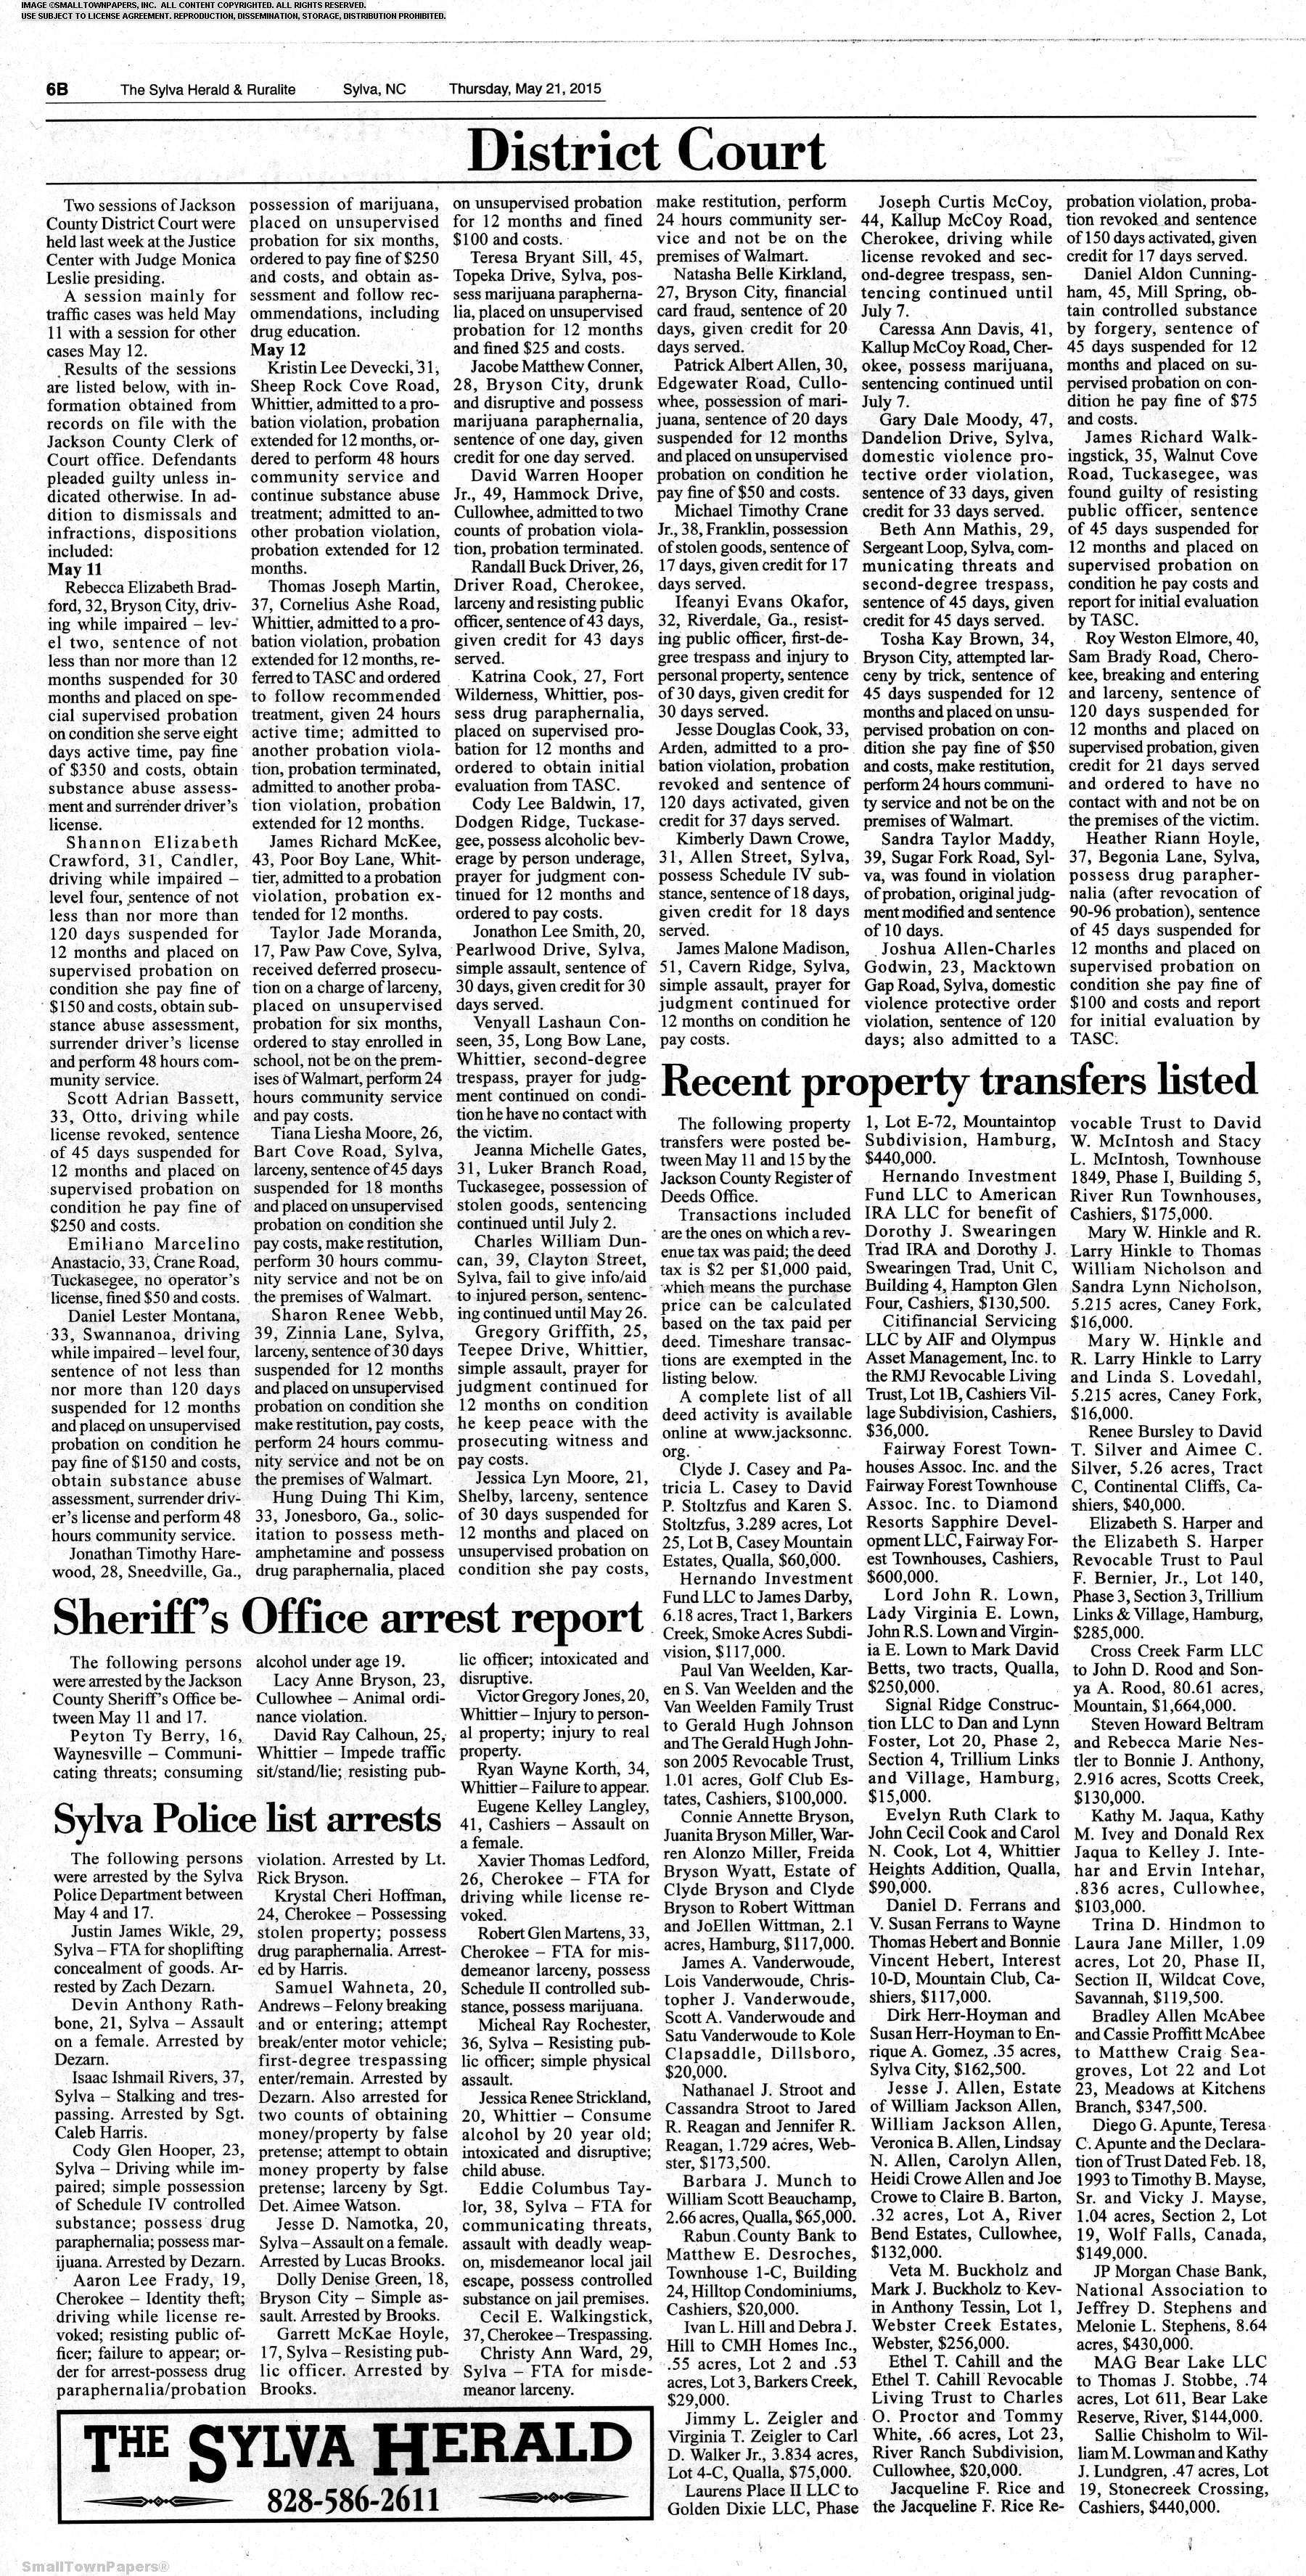 The Sylva Herald and Rualite May 21, 2015: Page 14